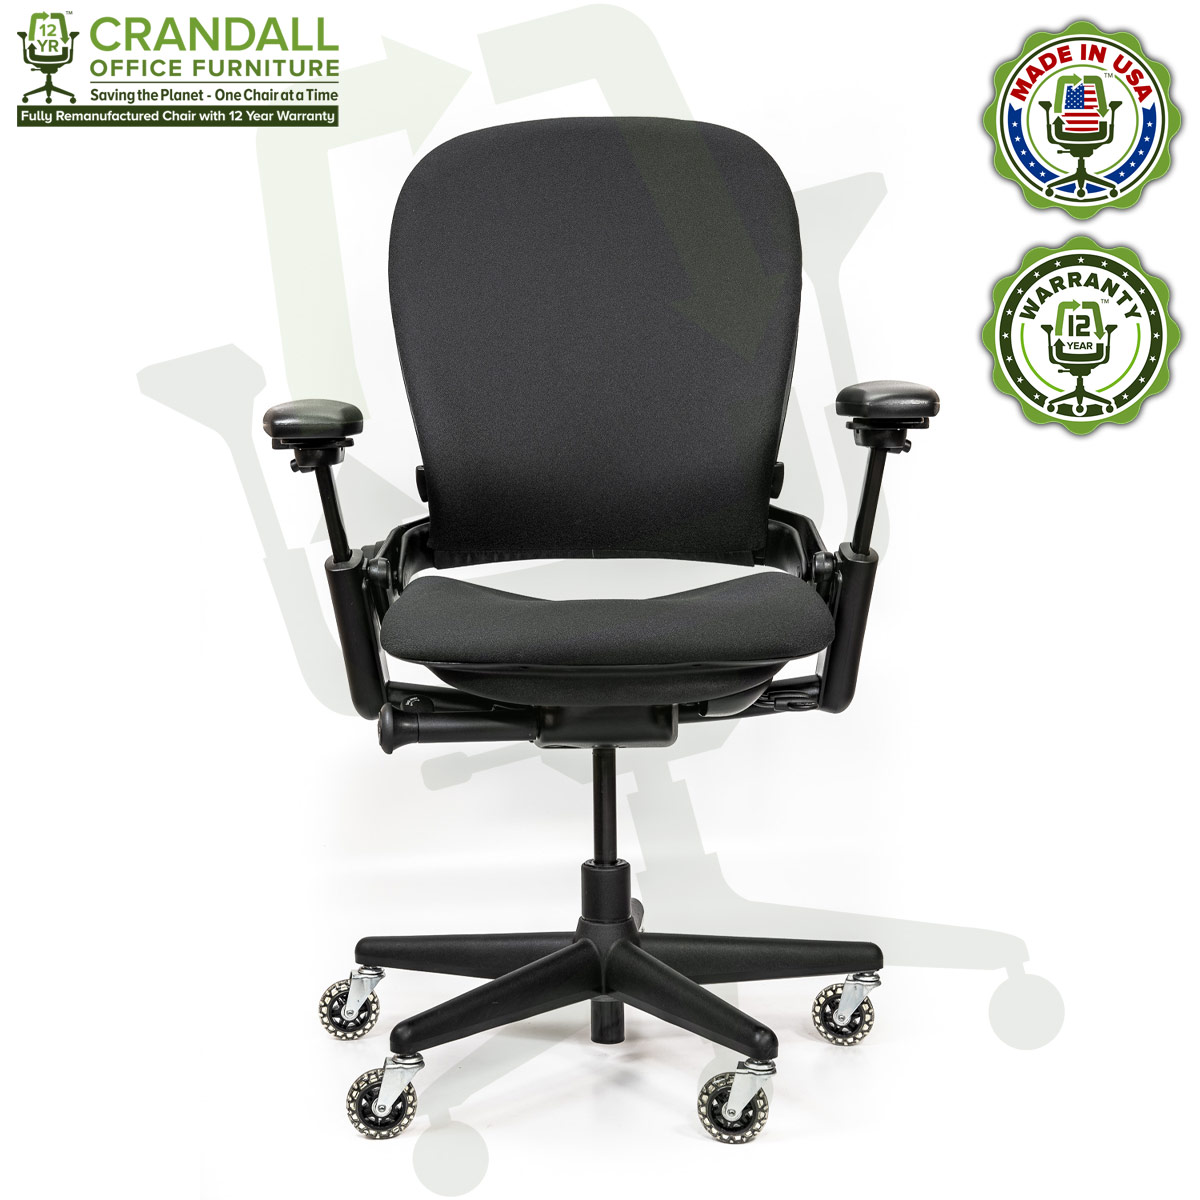 Crandall Office Furniture Remanufactured Steelcase V1 Leap Chair - Highback 001